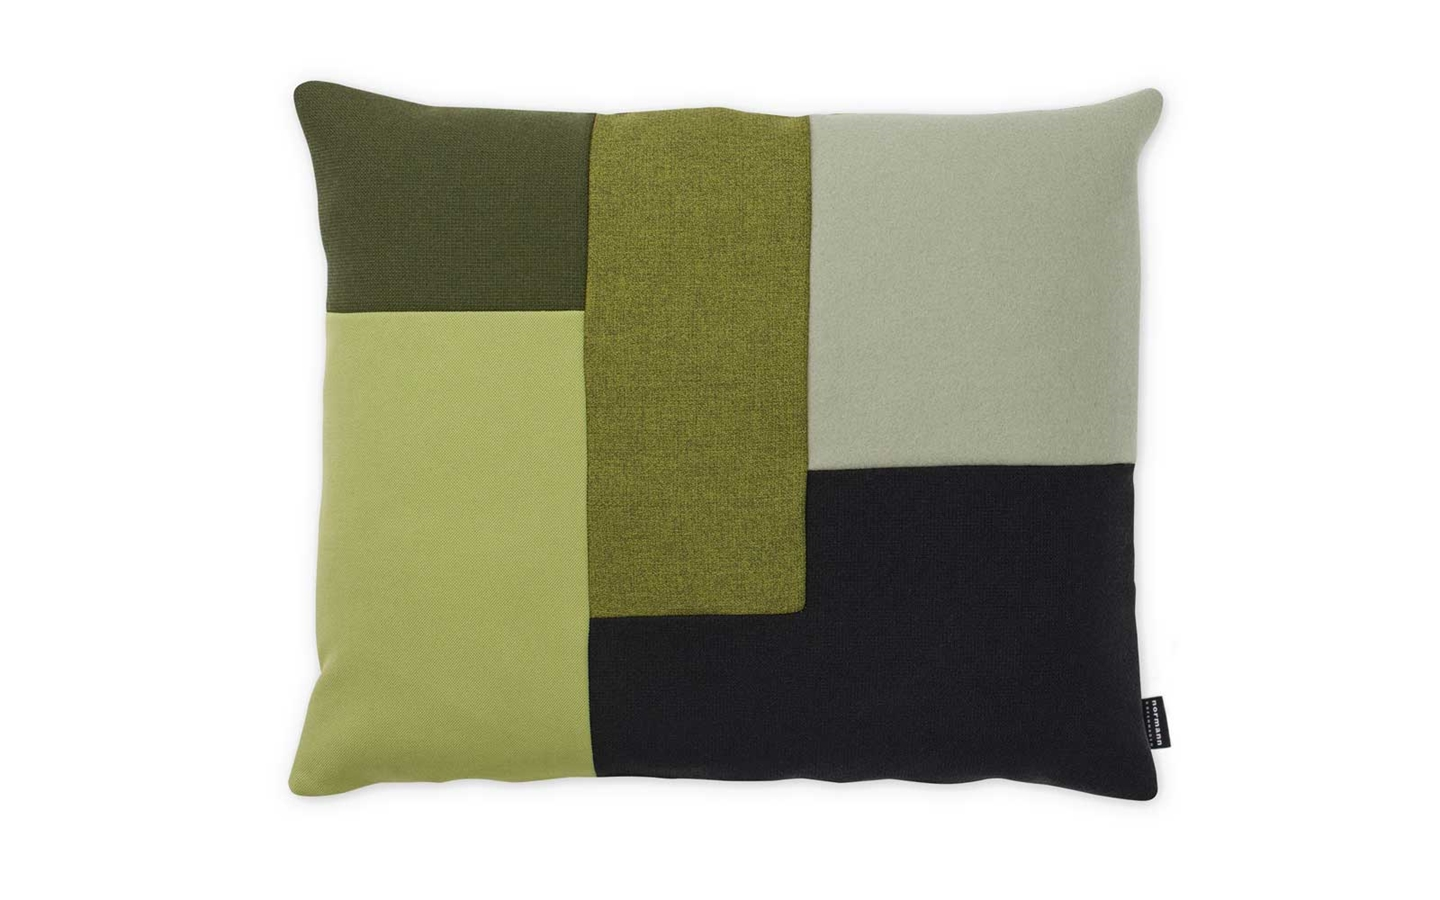 Brick Cushion Normann Copenhagen | alvaluz.com